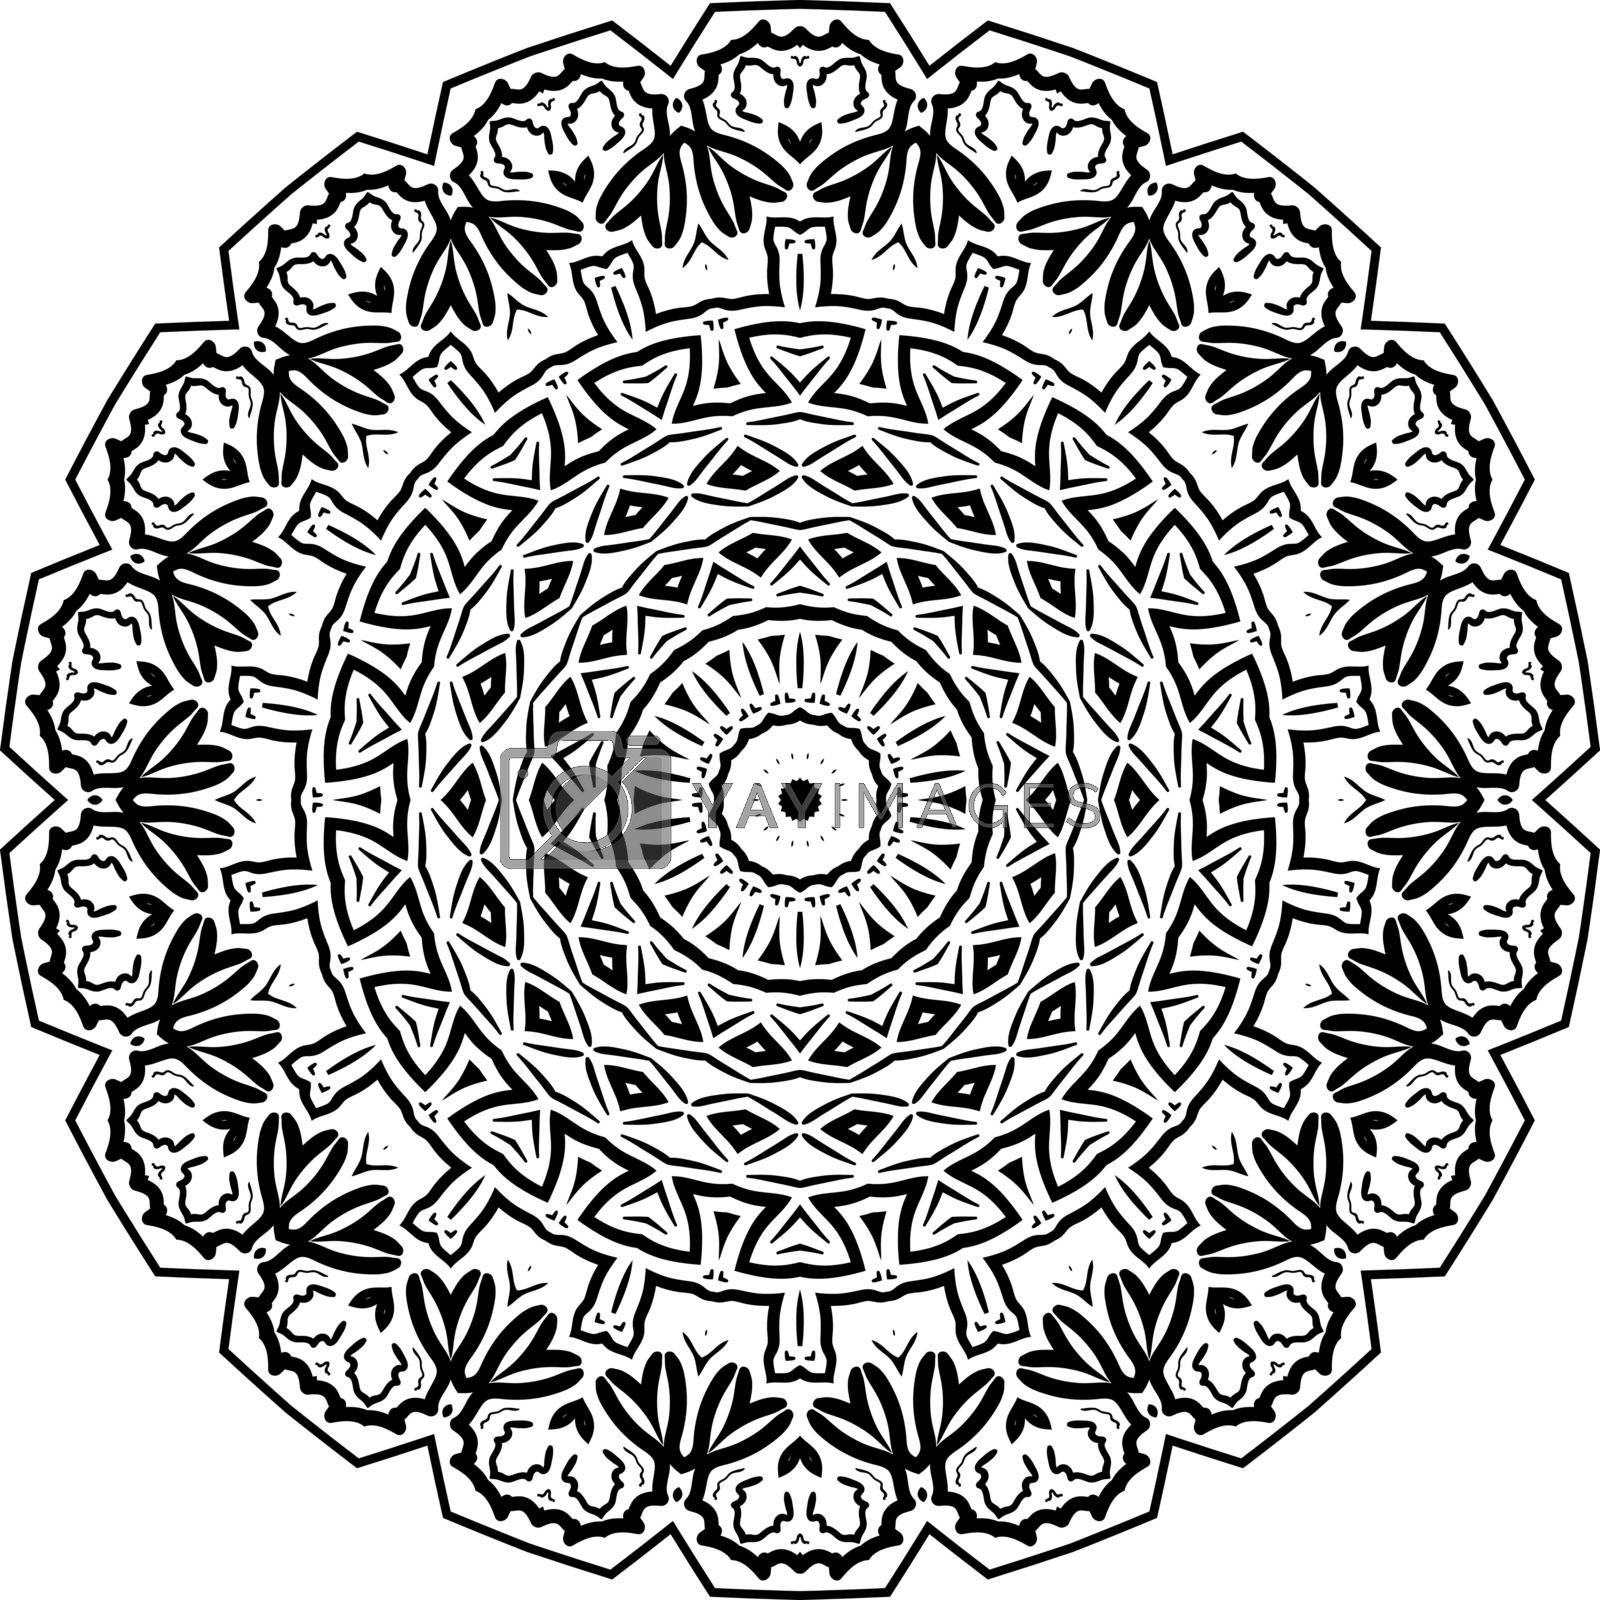 Mandala. Zentangle inspired vector illustration, black and white. Abstract diwali texture